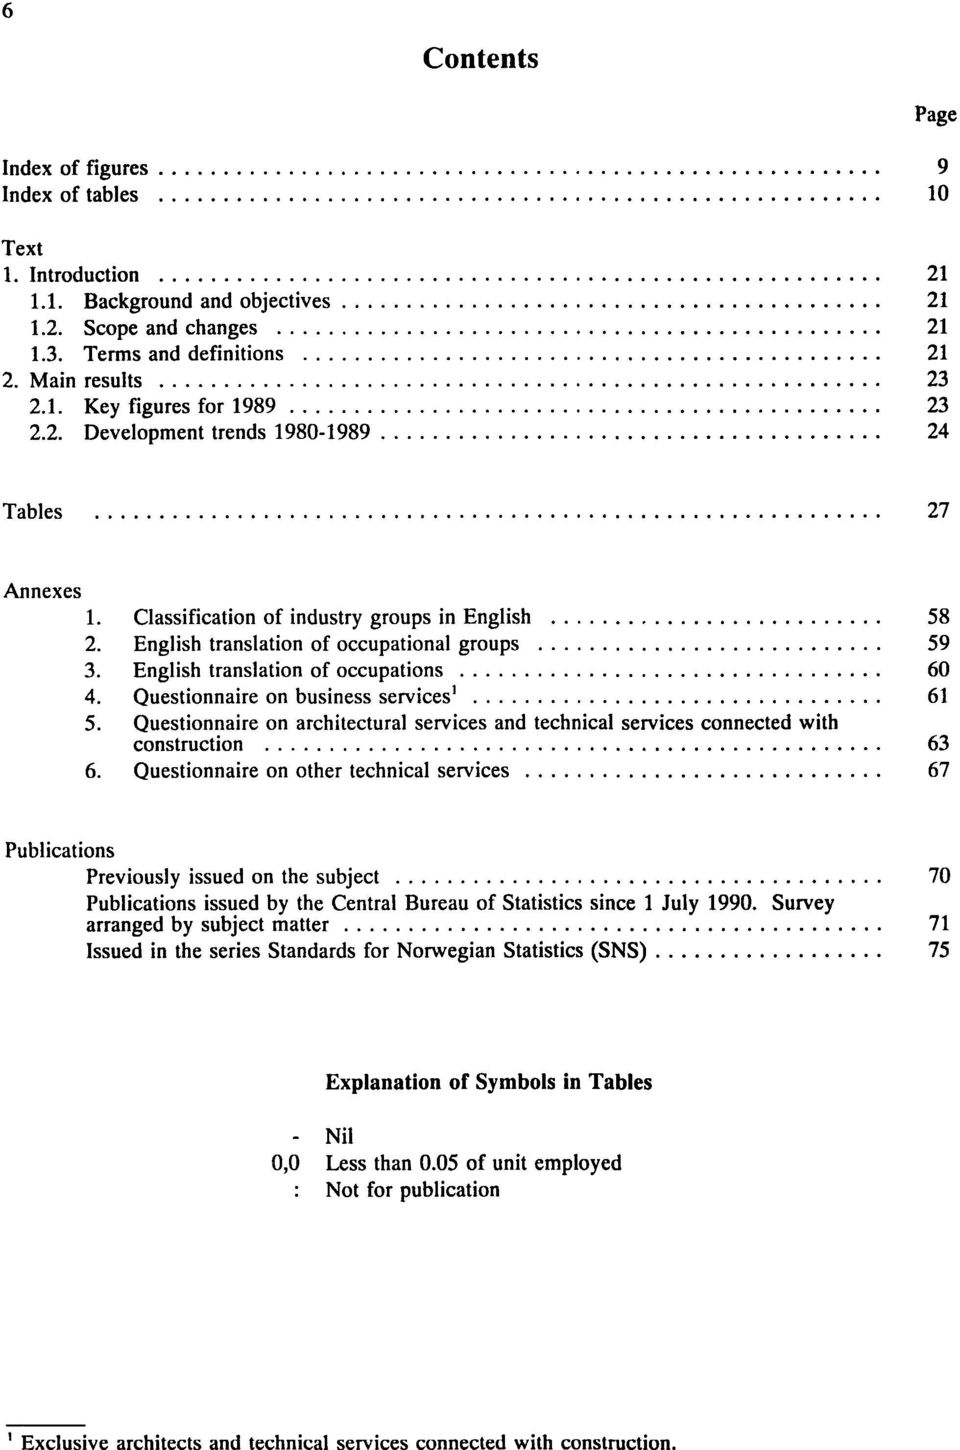 English translation of occupations 60 4. Questionnaire on business services' 61 5. Questionnaire on architectural services and technical services connected with construction 63 6.